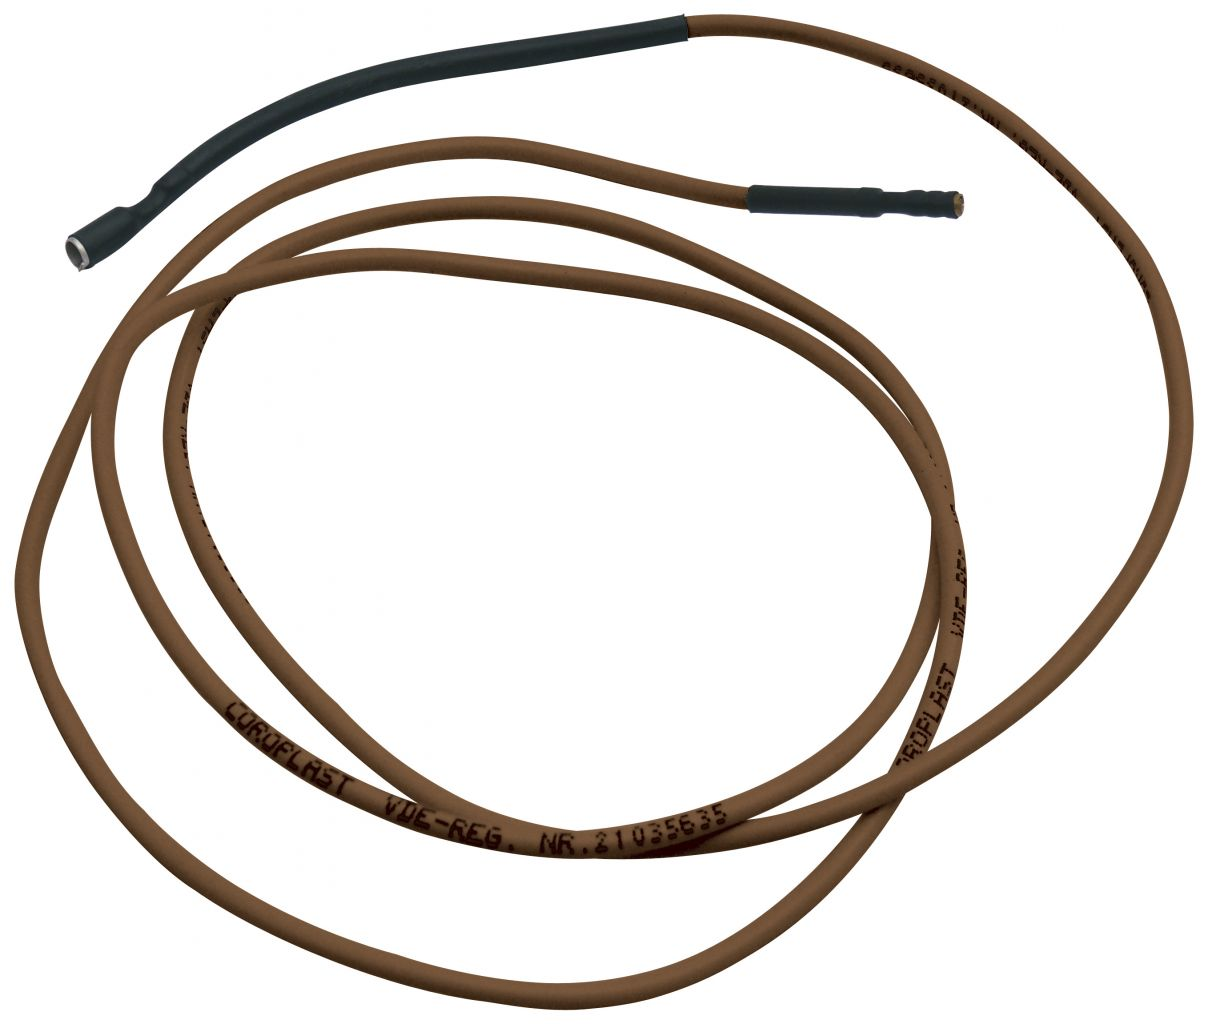 Ignition Cable for Piezo Igniter for Dometic Refrigerators, No. 292788095/1